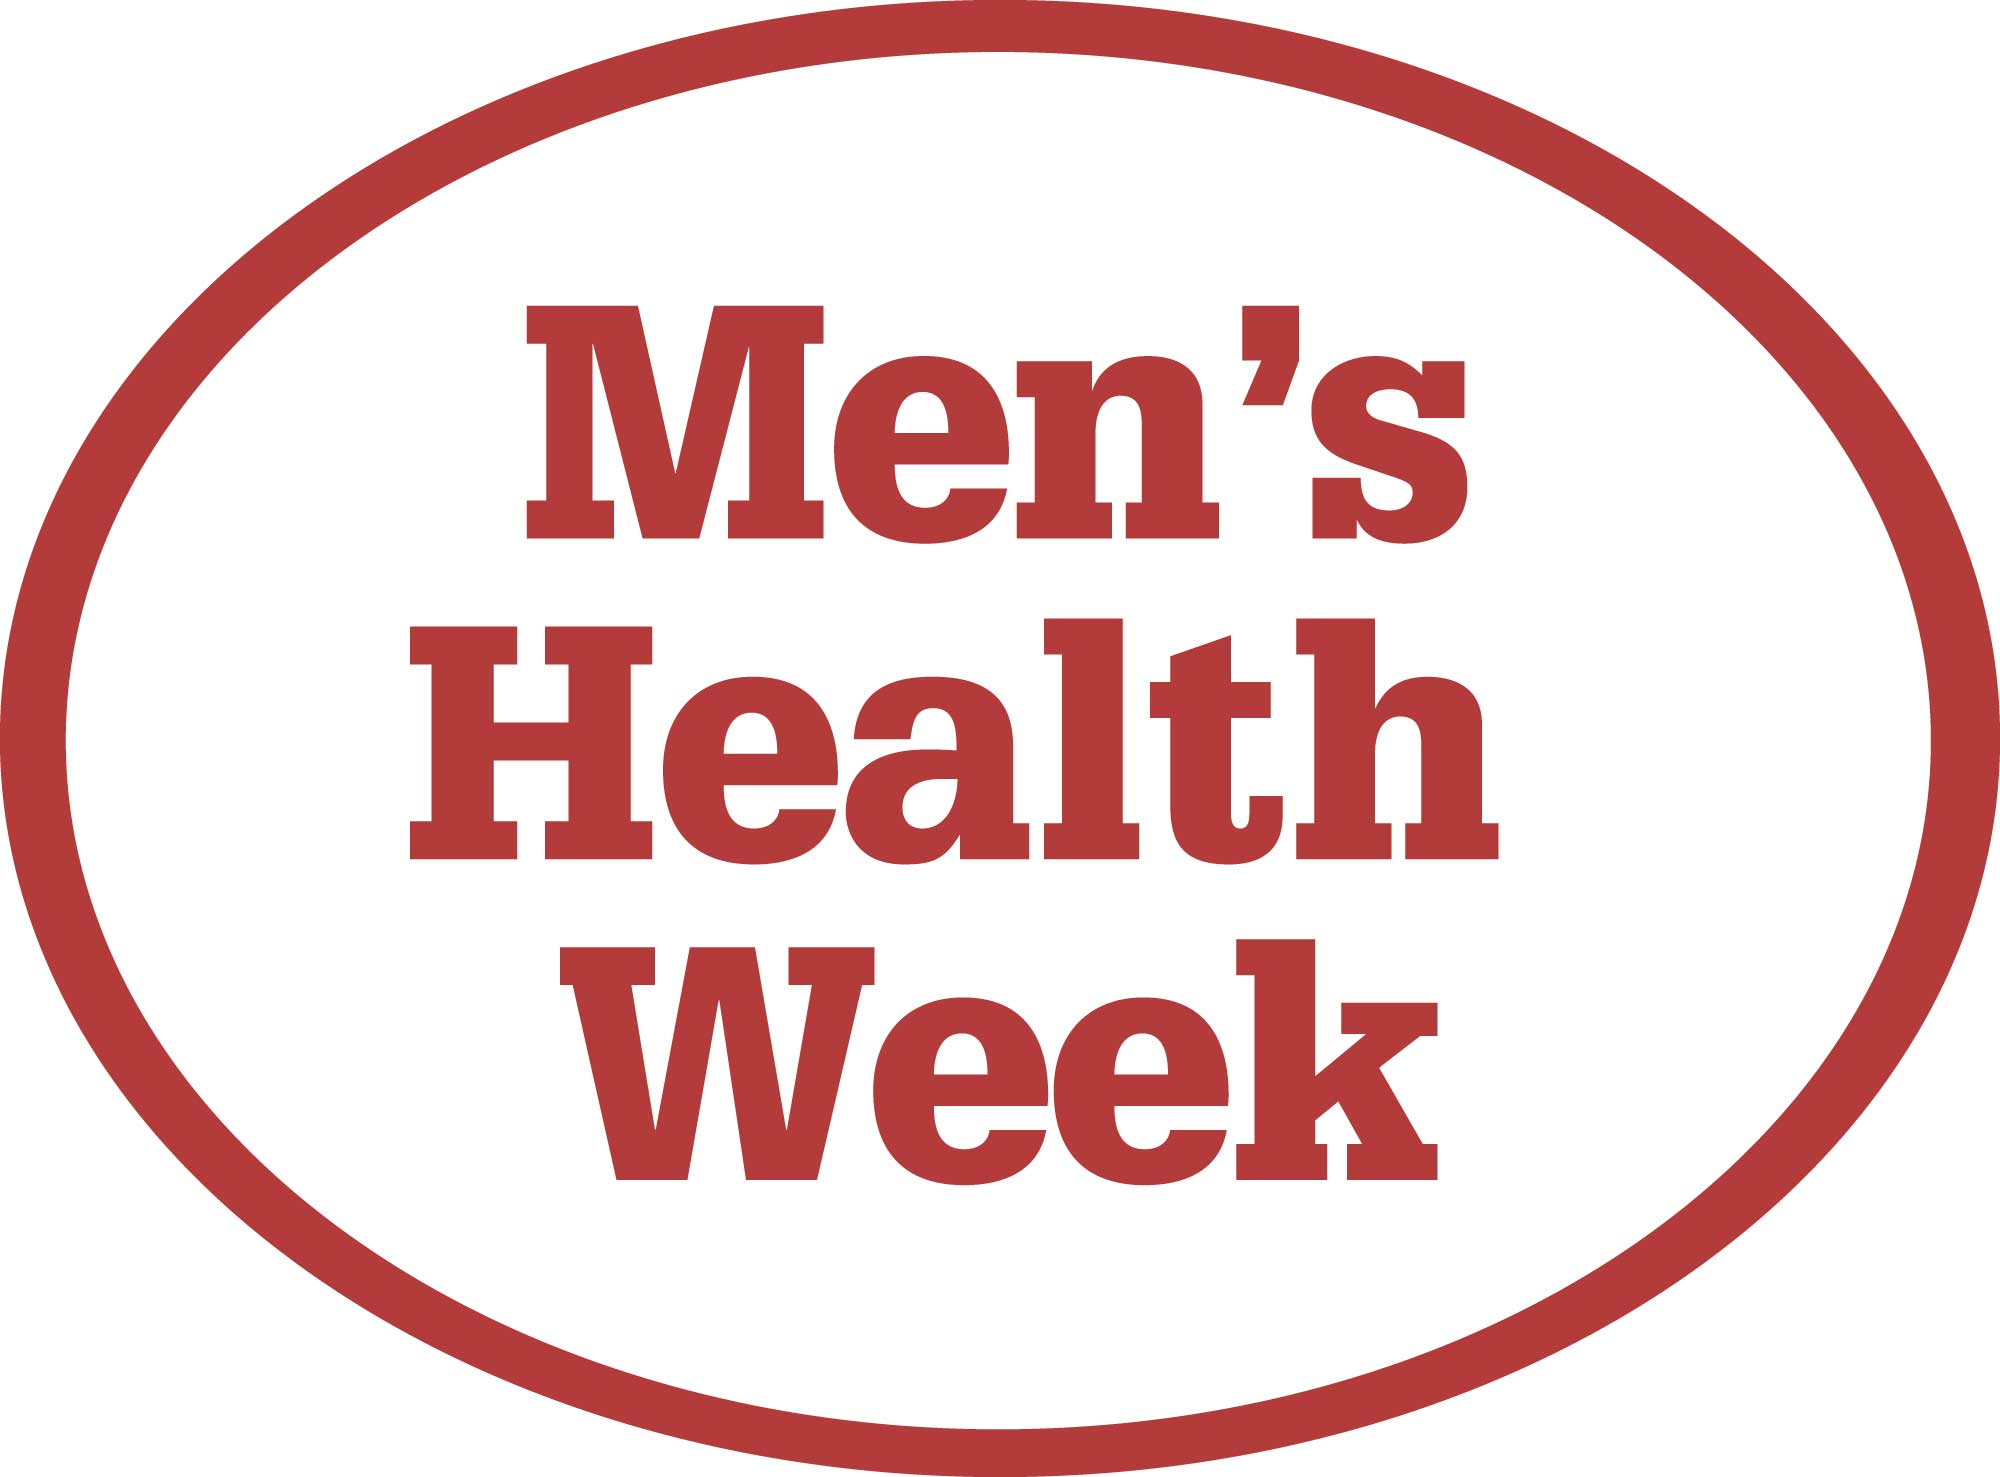 the logo for men's mental health week